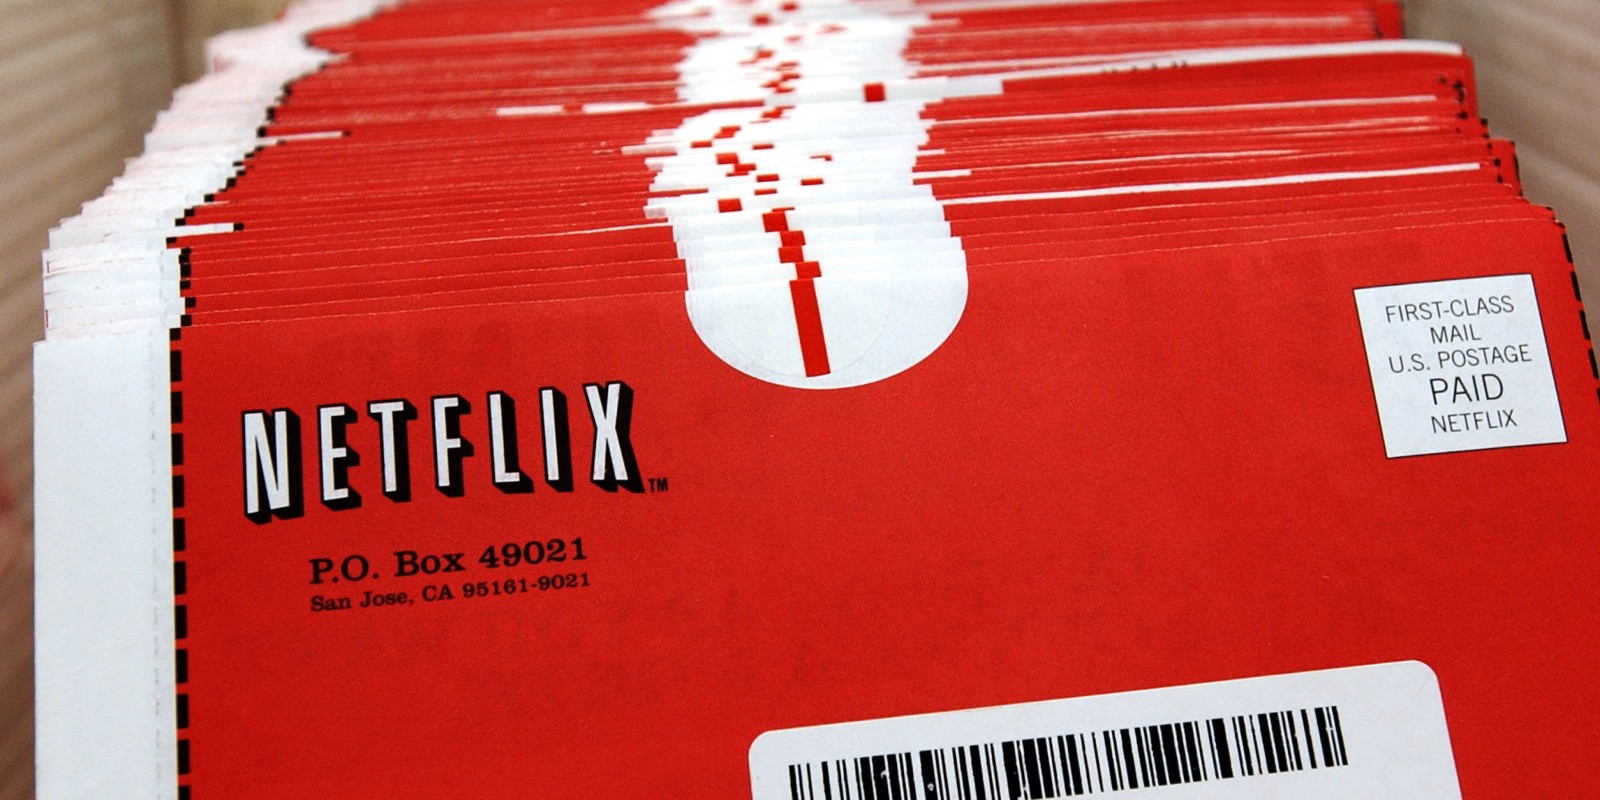 Is Netflix A Harbinger For The Theme Park Design Industry Wiring Diagram Dvds By Mail Service Provided More Efficient And Convenient Than Conventional Movie Rental Business Models Because Its Delivery Method